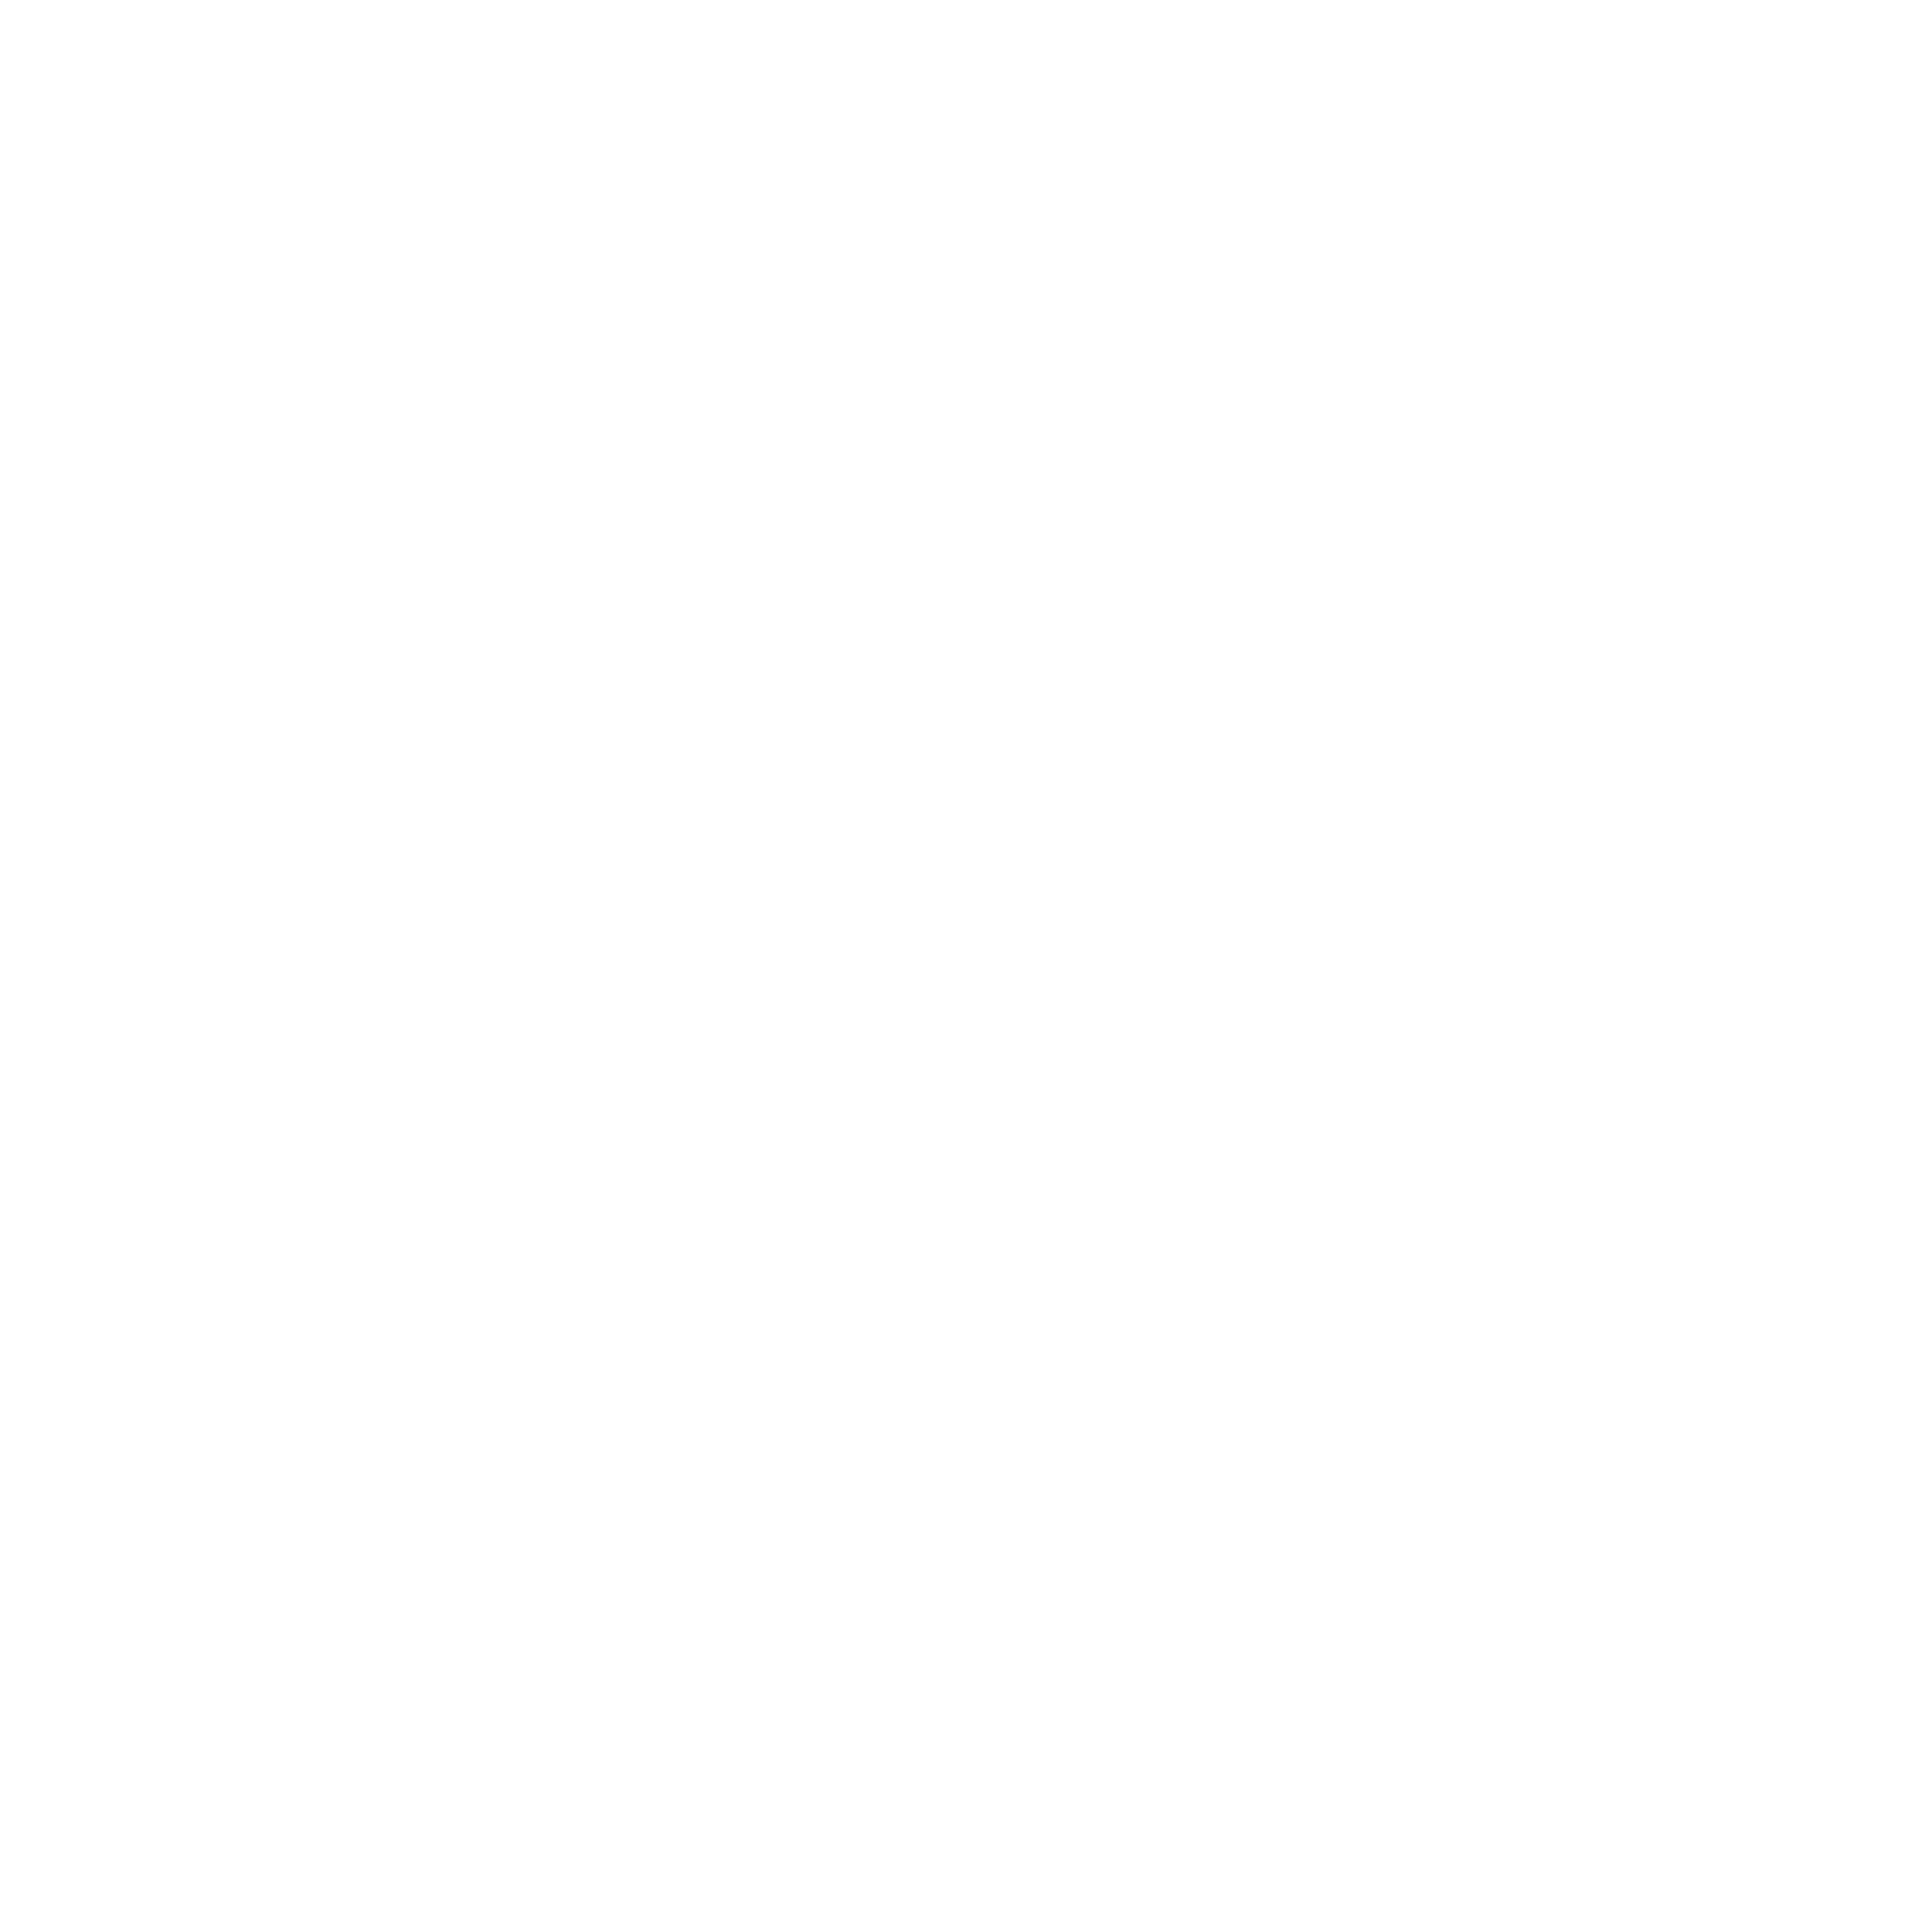 Together white